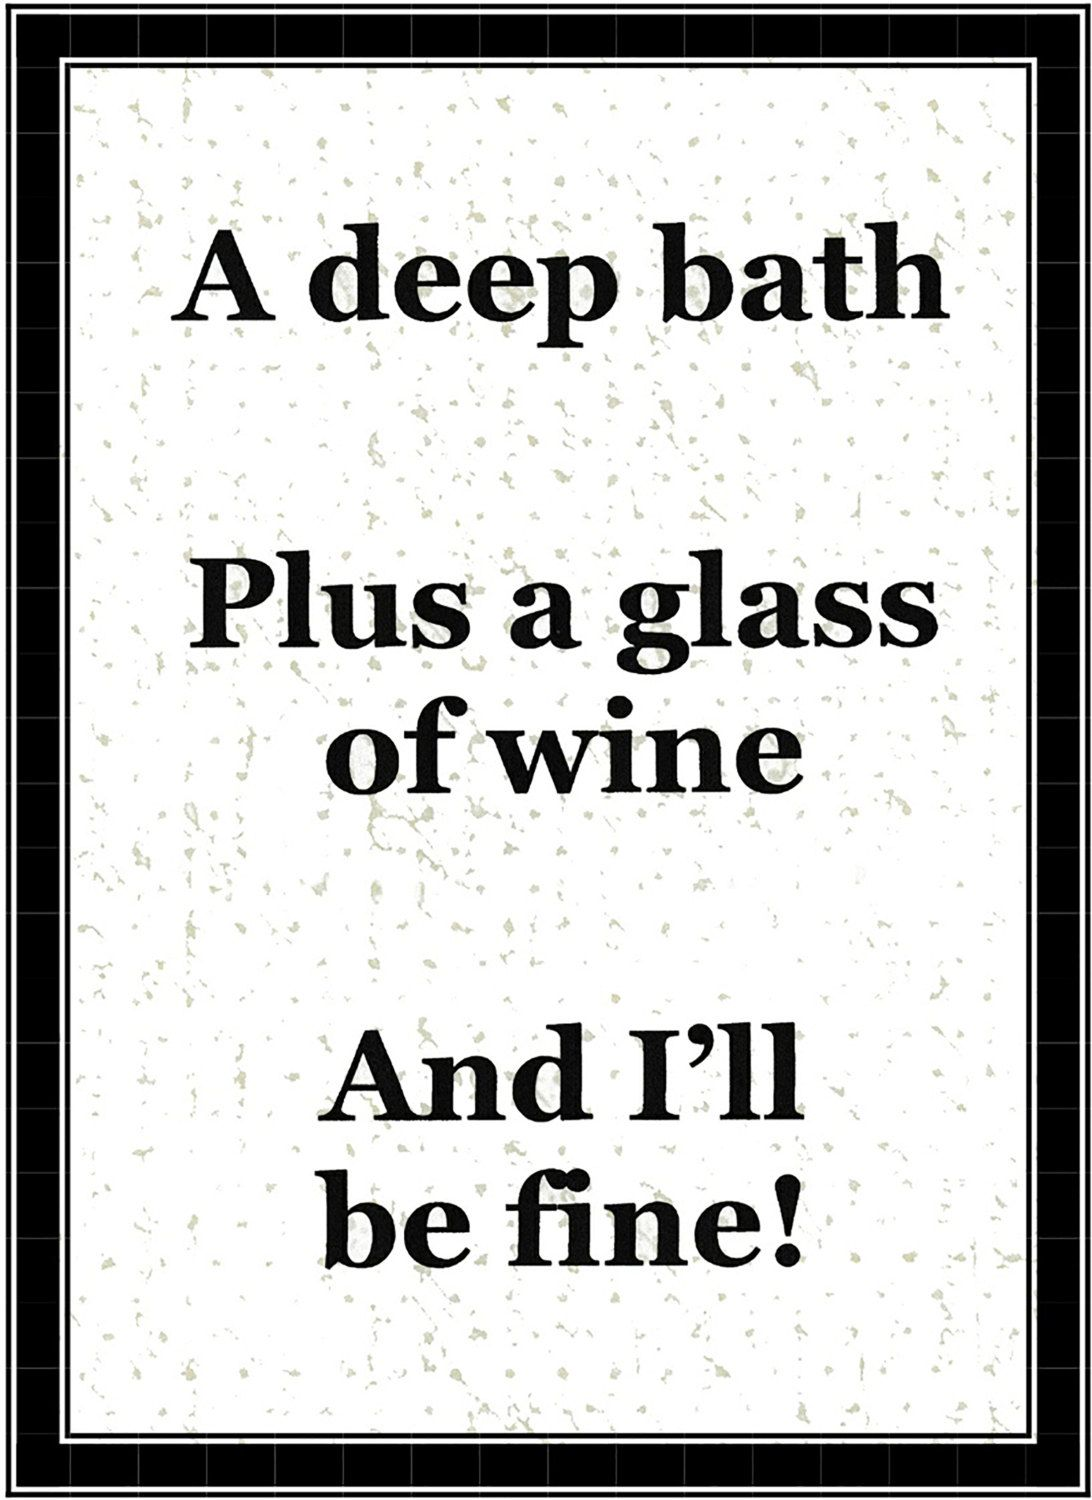 A deep bath plus a glass of wine wall art quote poster